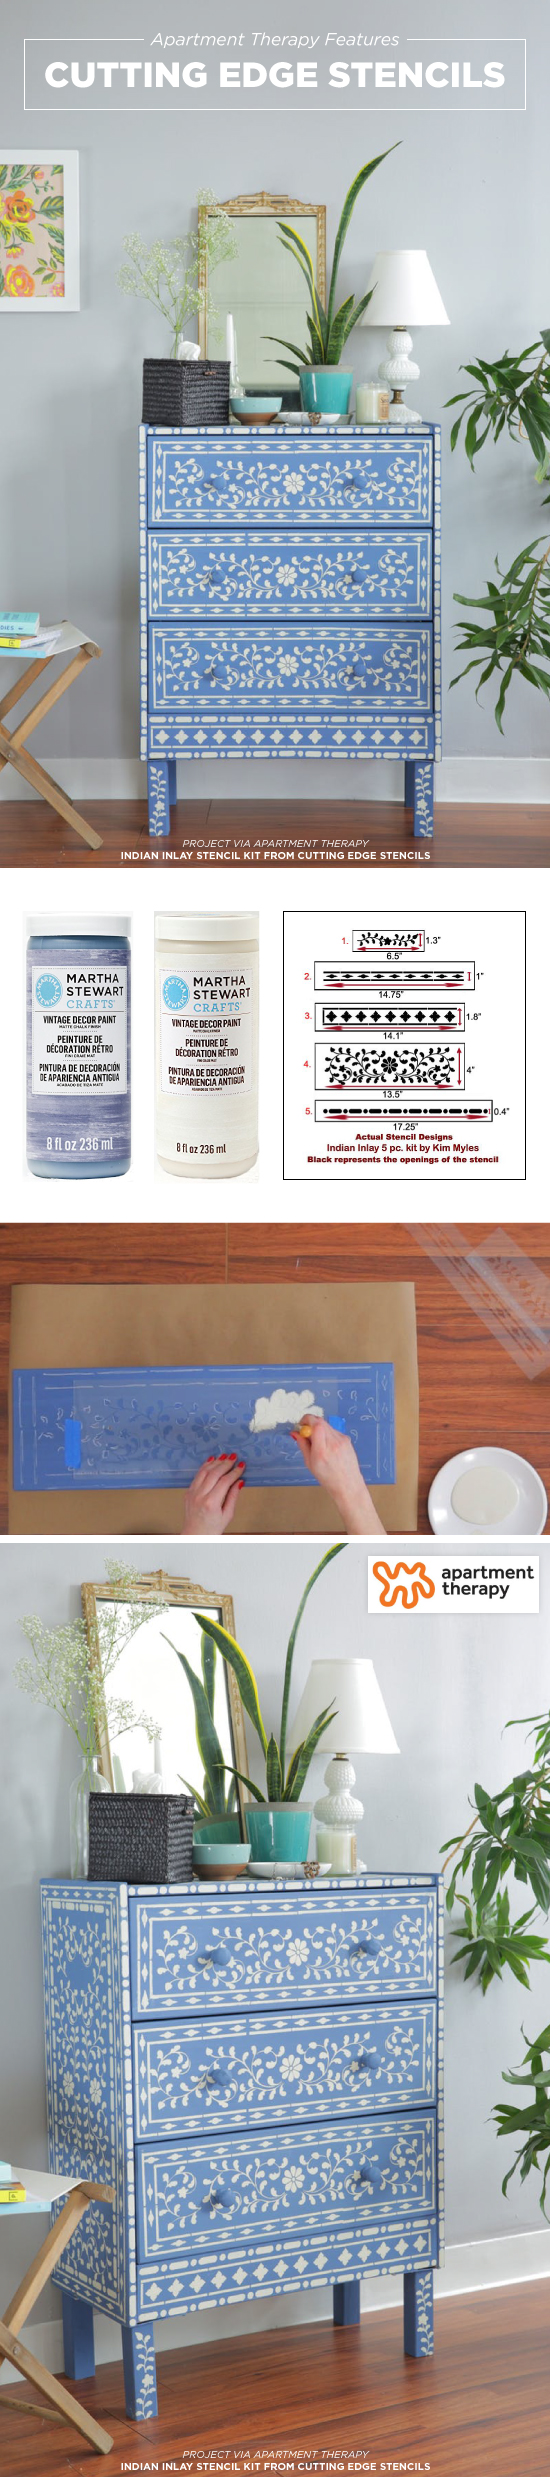 Apartment Therapy Shares How To Stencil 35 Ikea Rast Dresser Using The Indian Inlay Kit